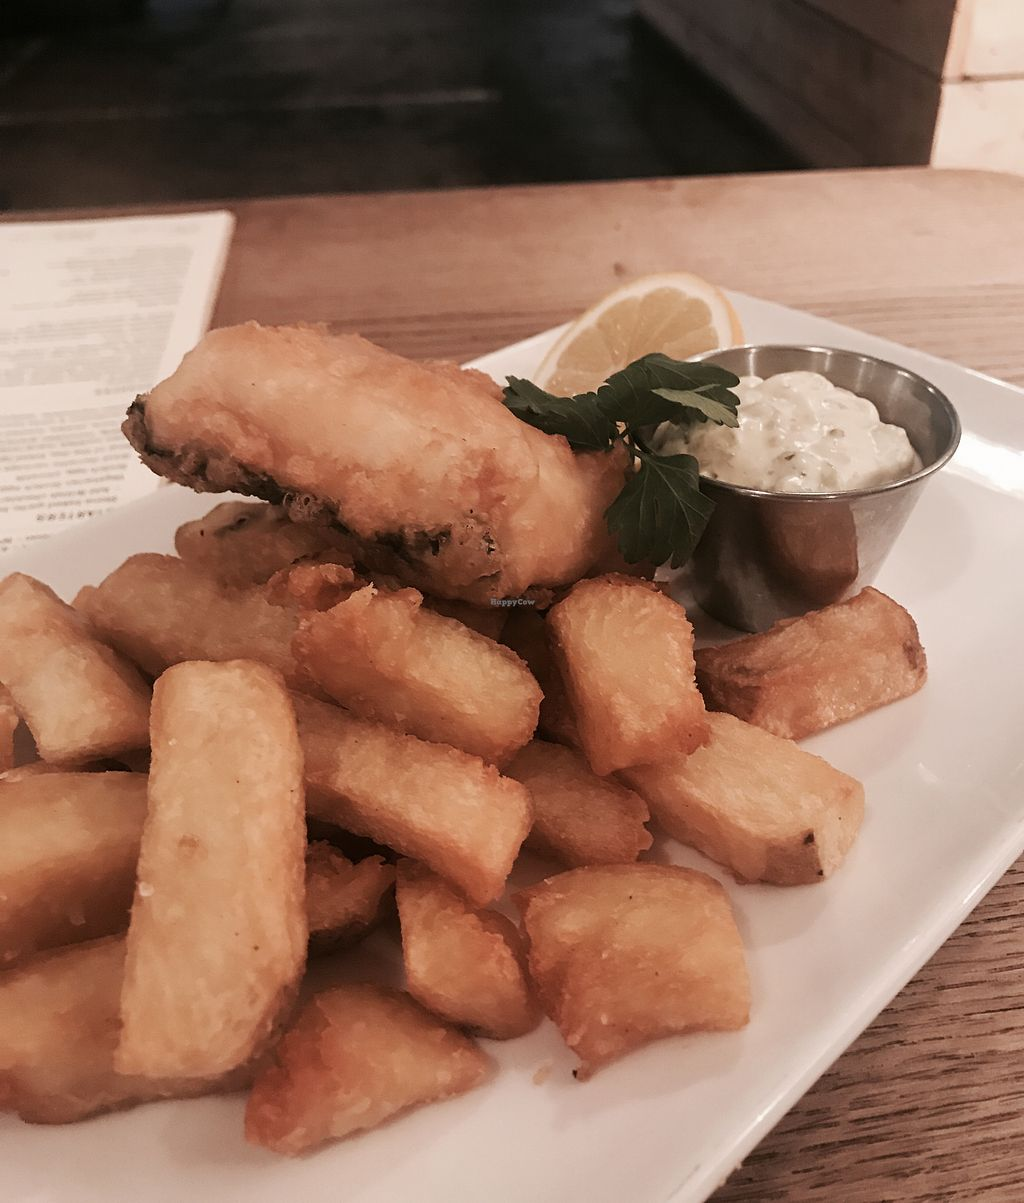 """Photo of Acanteen  by <a href=""""/members/profile/EmmaOdell"""">EmmaOdell</a> <br/>Vegan fish & chips <br/> May 8, 2018  - <a href='/contact/abuse/image/109942/396930'>Report</a>"""